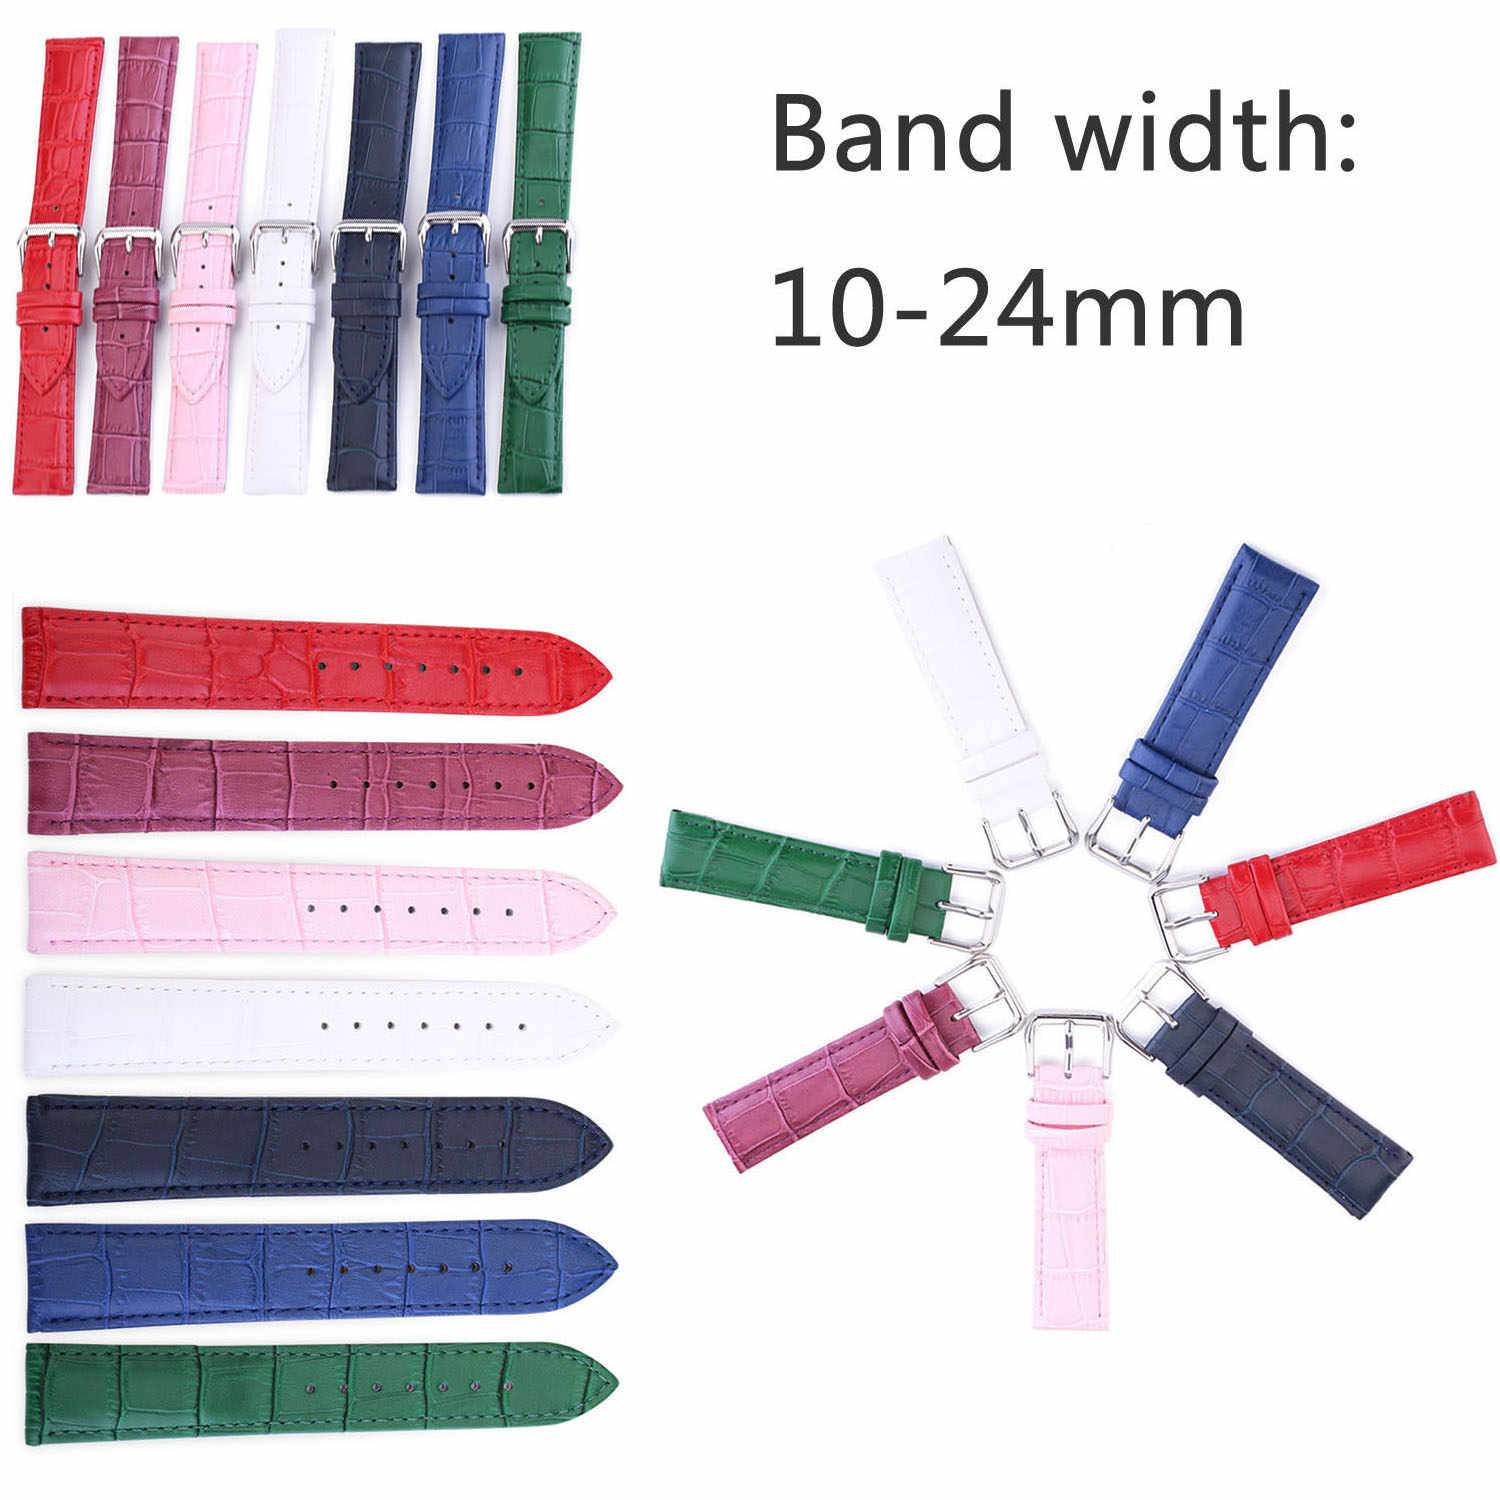 Crocodile Pattern Genuine Cow Leather Strap Watch Band 10mm 12mm 13mm 14mm 15mm 16mm 17mm 18mm 19mm 20mm 22mm 24mm Watchband